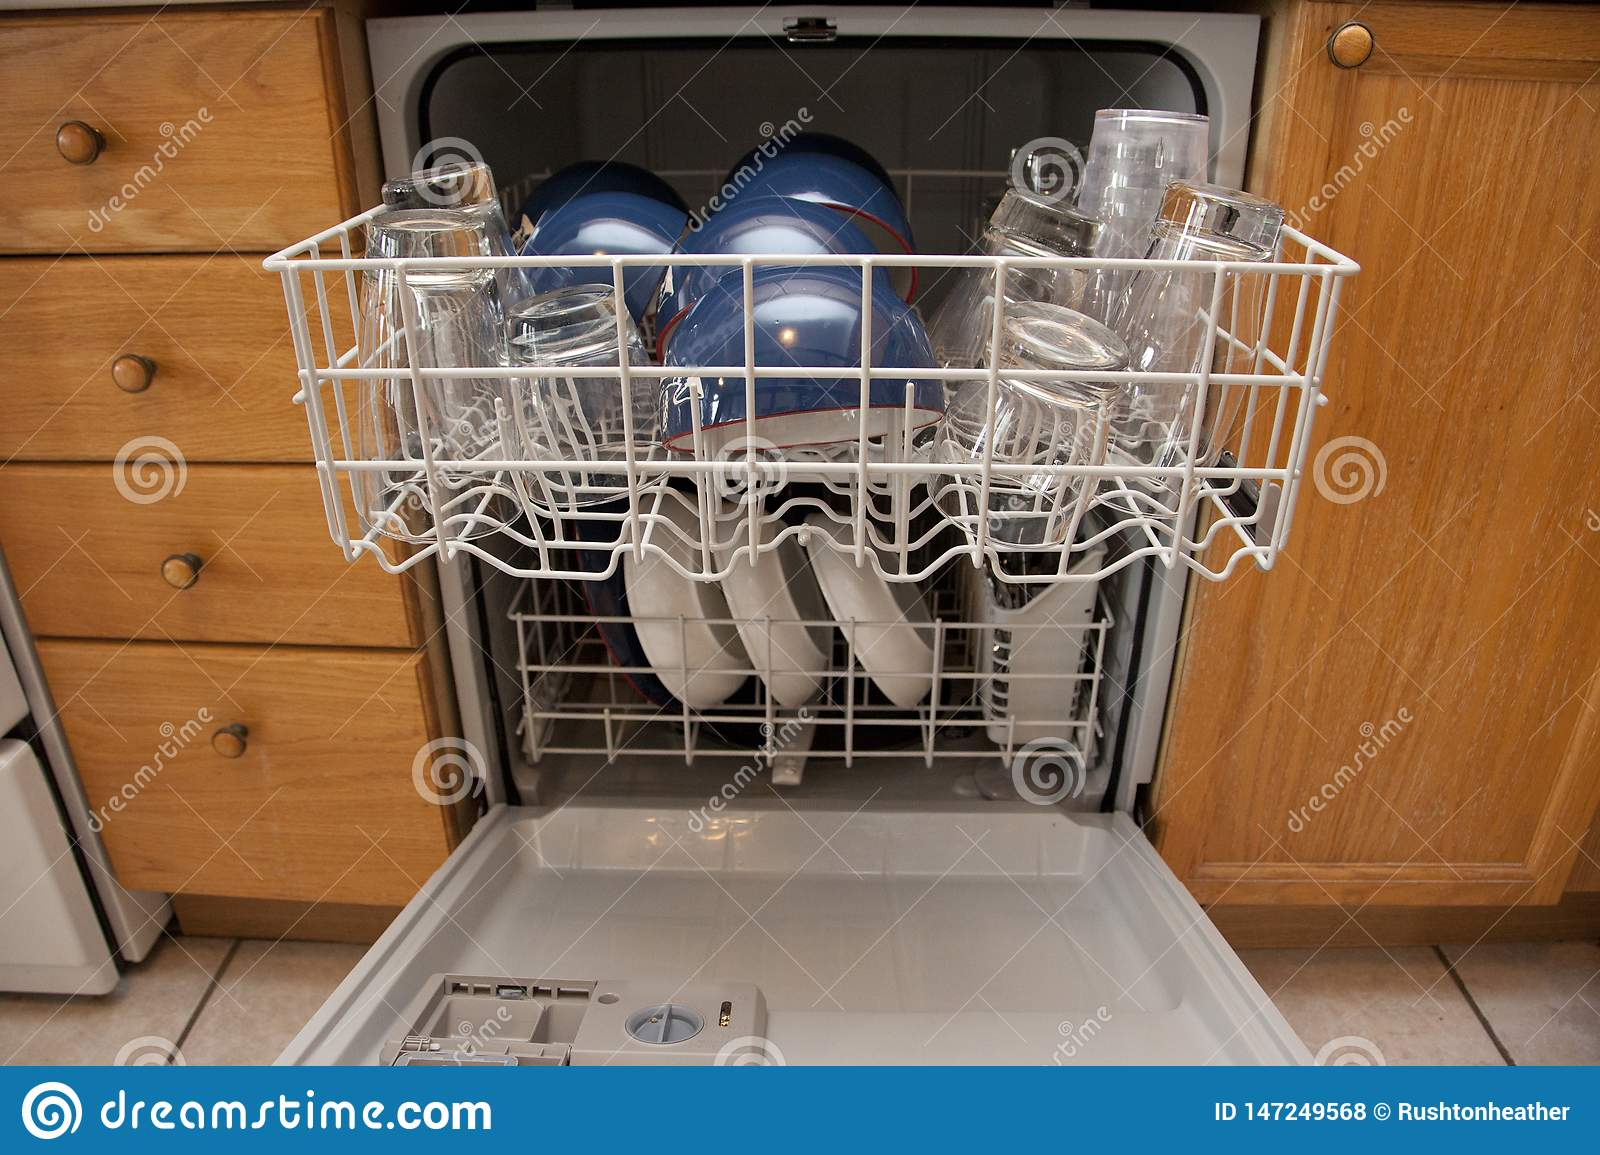 Full Dishwasher In Apartment Stock Photo - Image of concept ...